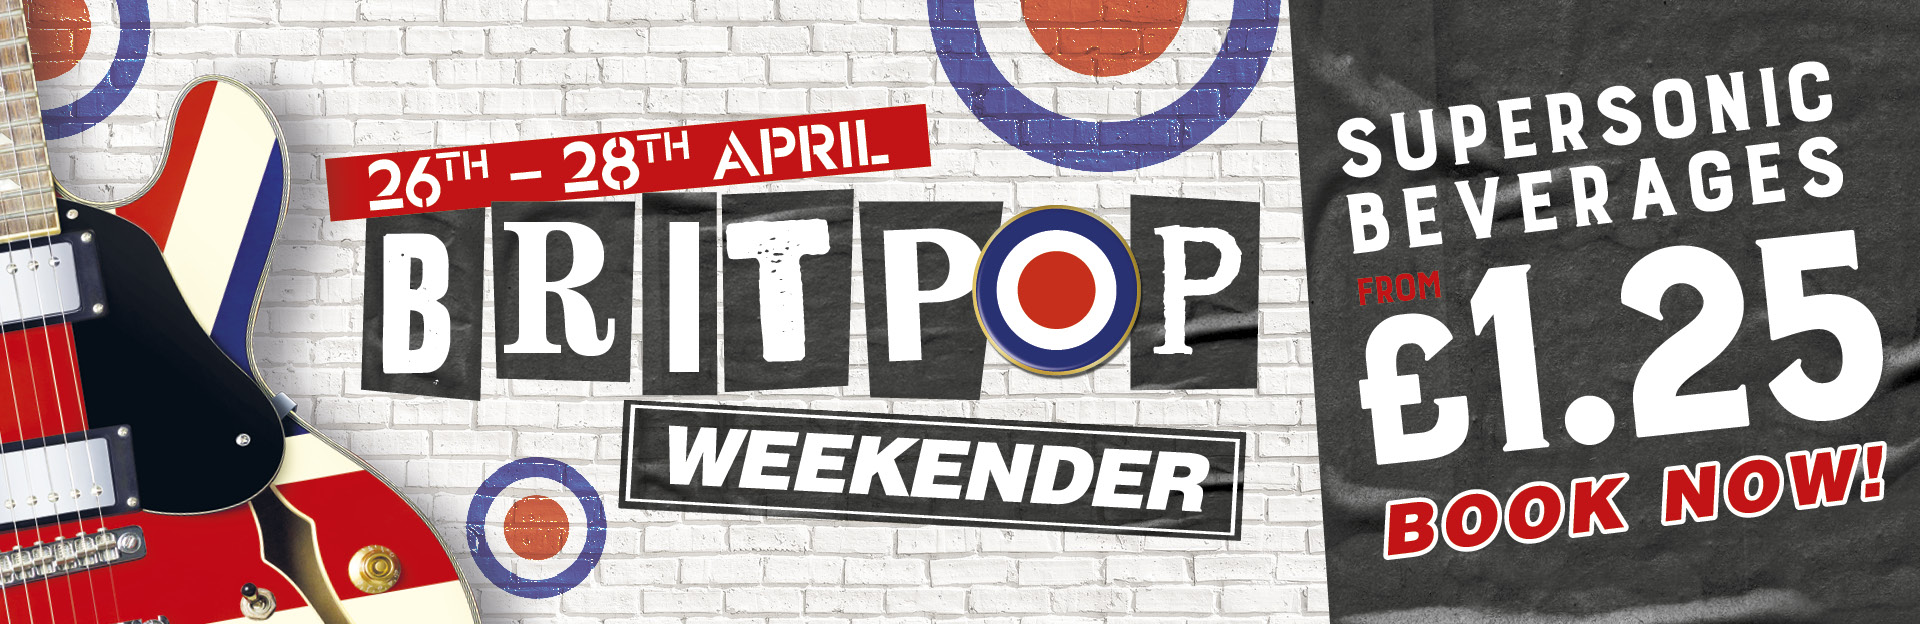 Britpop Weekender at The White Rose